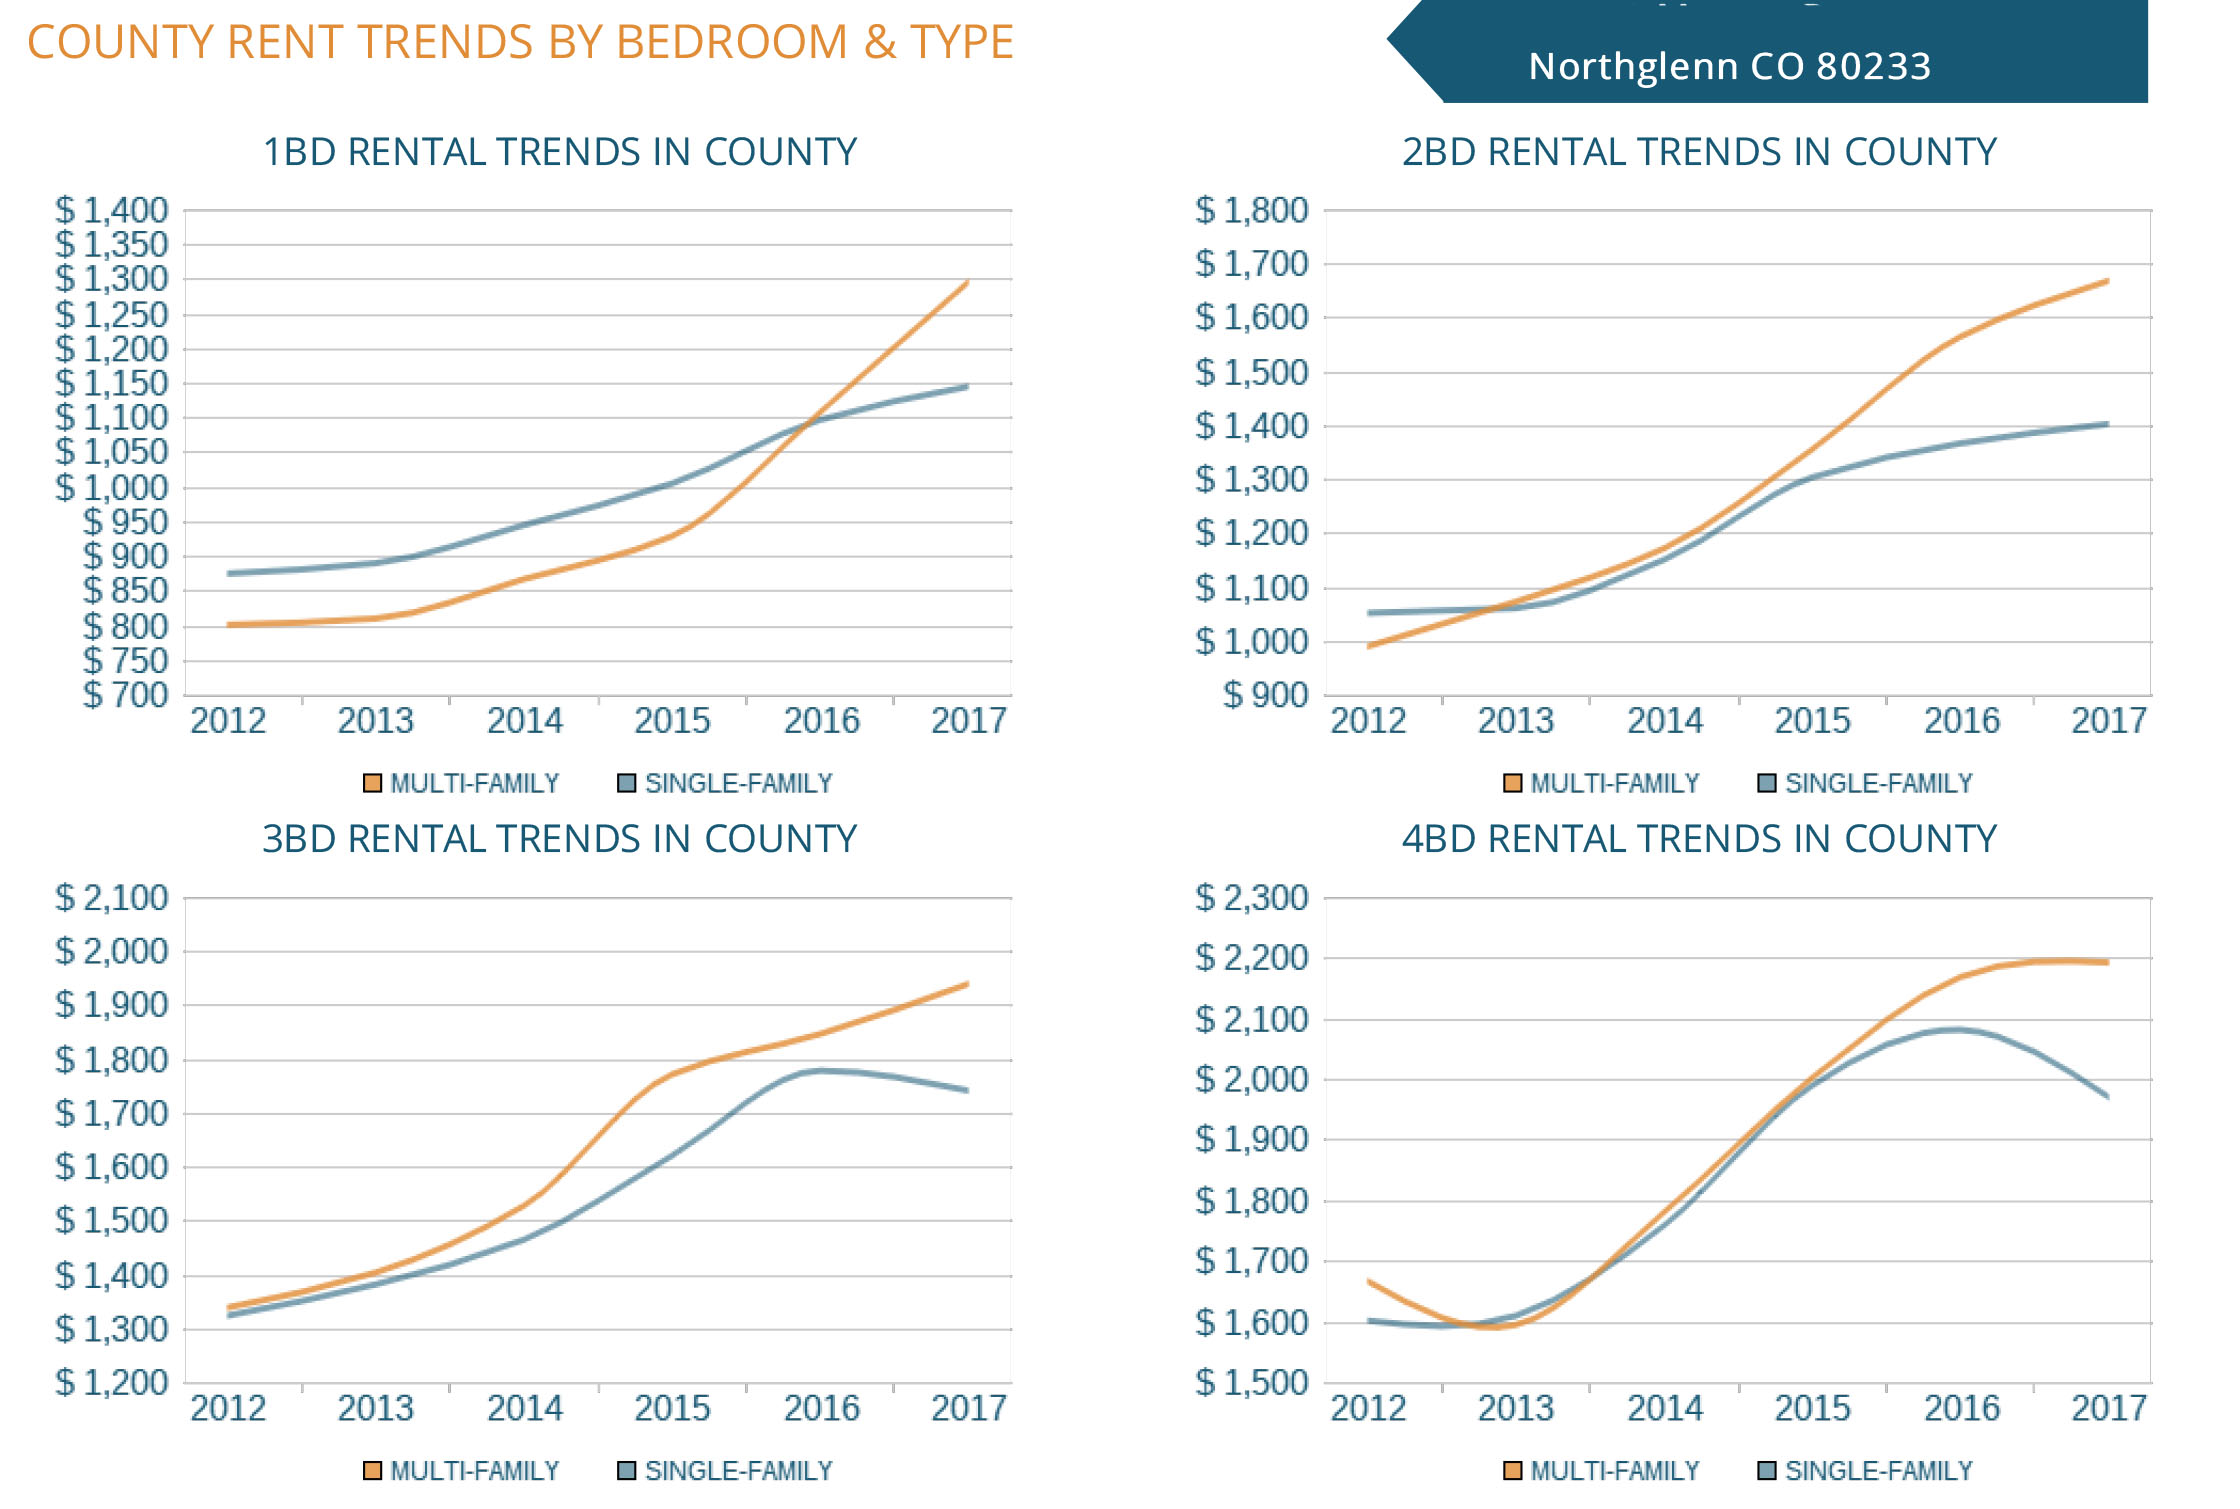 Northglenn County Rent Trends By Bedroom